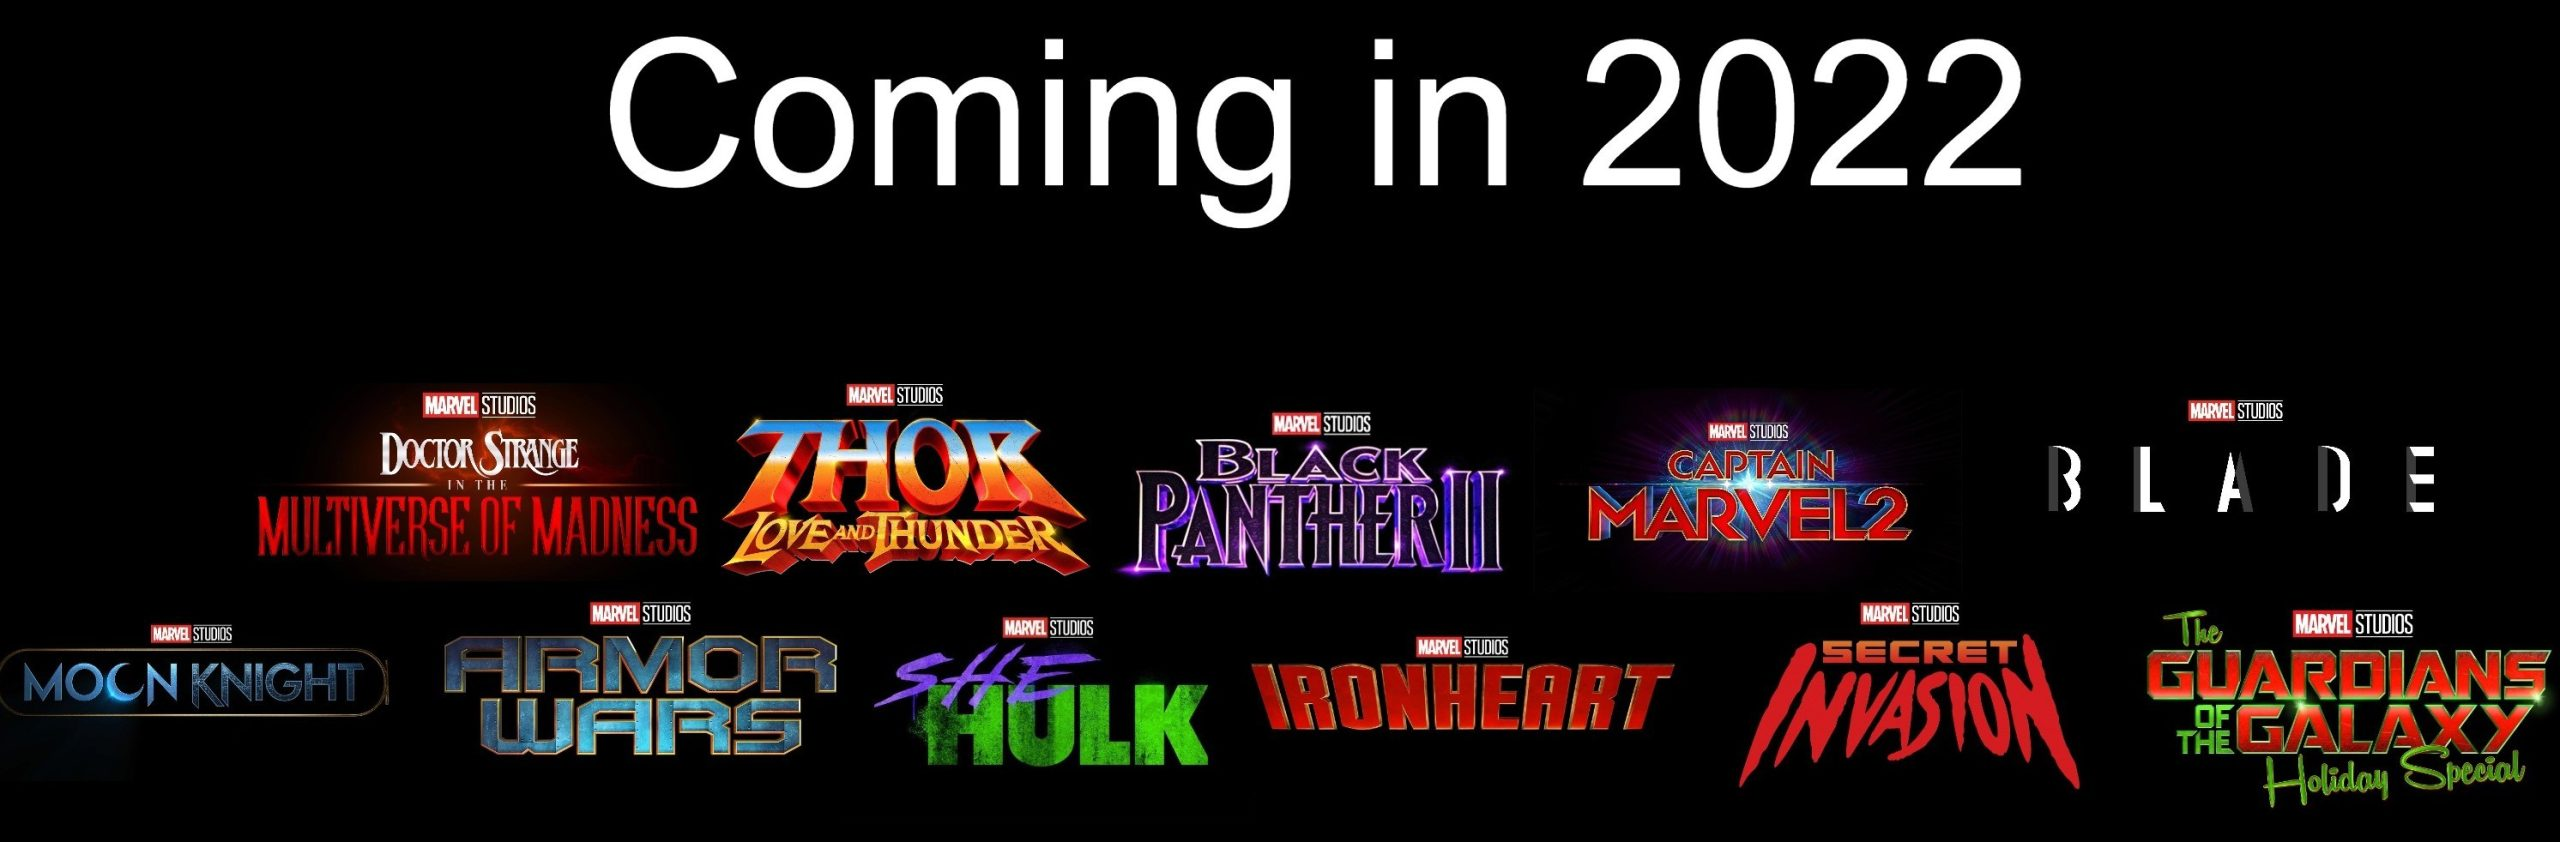 Marvel Studios could have as many as 11 projects (6 shows, 5 films) drop in 2022